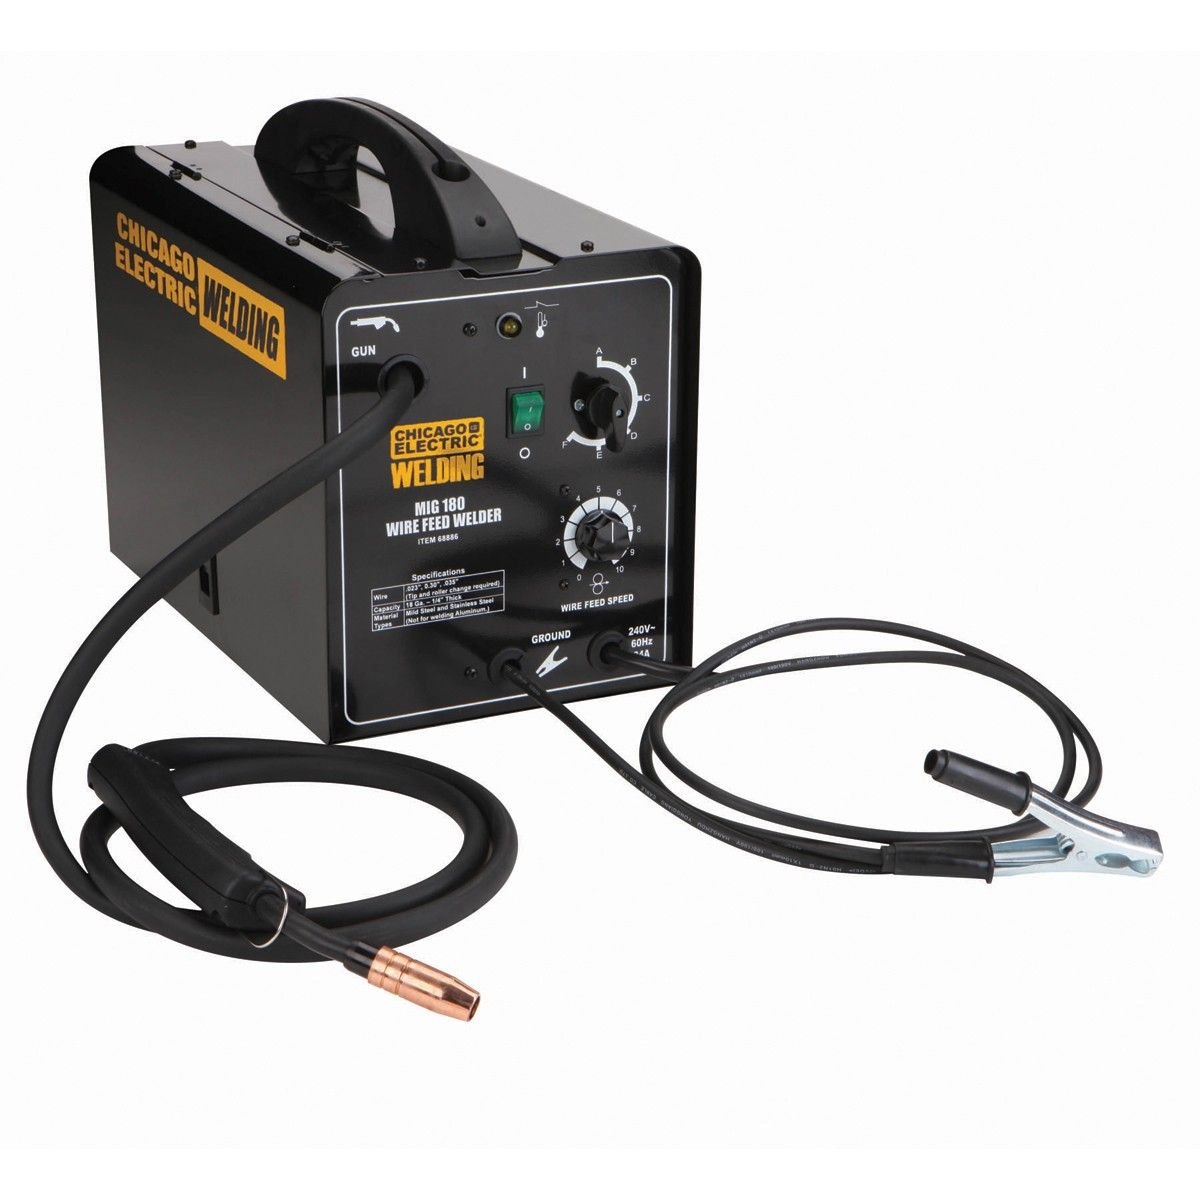 hight resolution of lincoln wire feed welder parts in addition chicago electric wire wiring diagram go